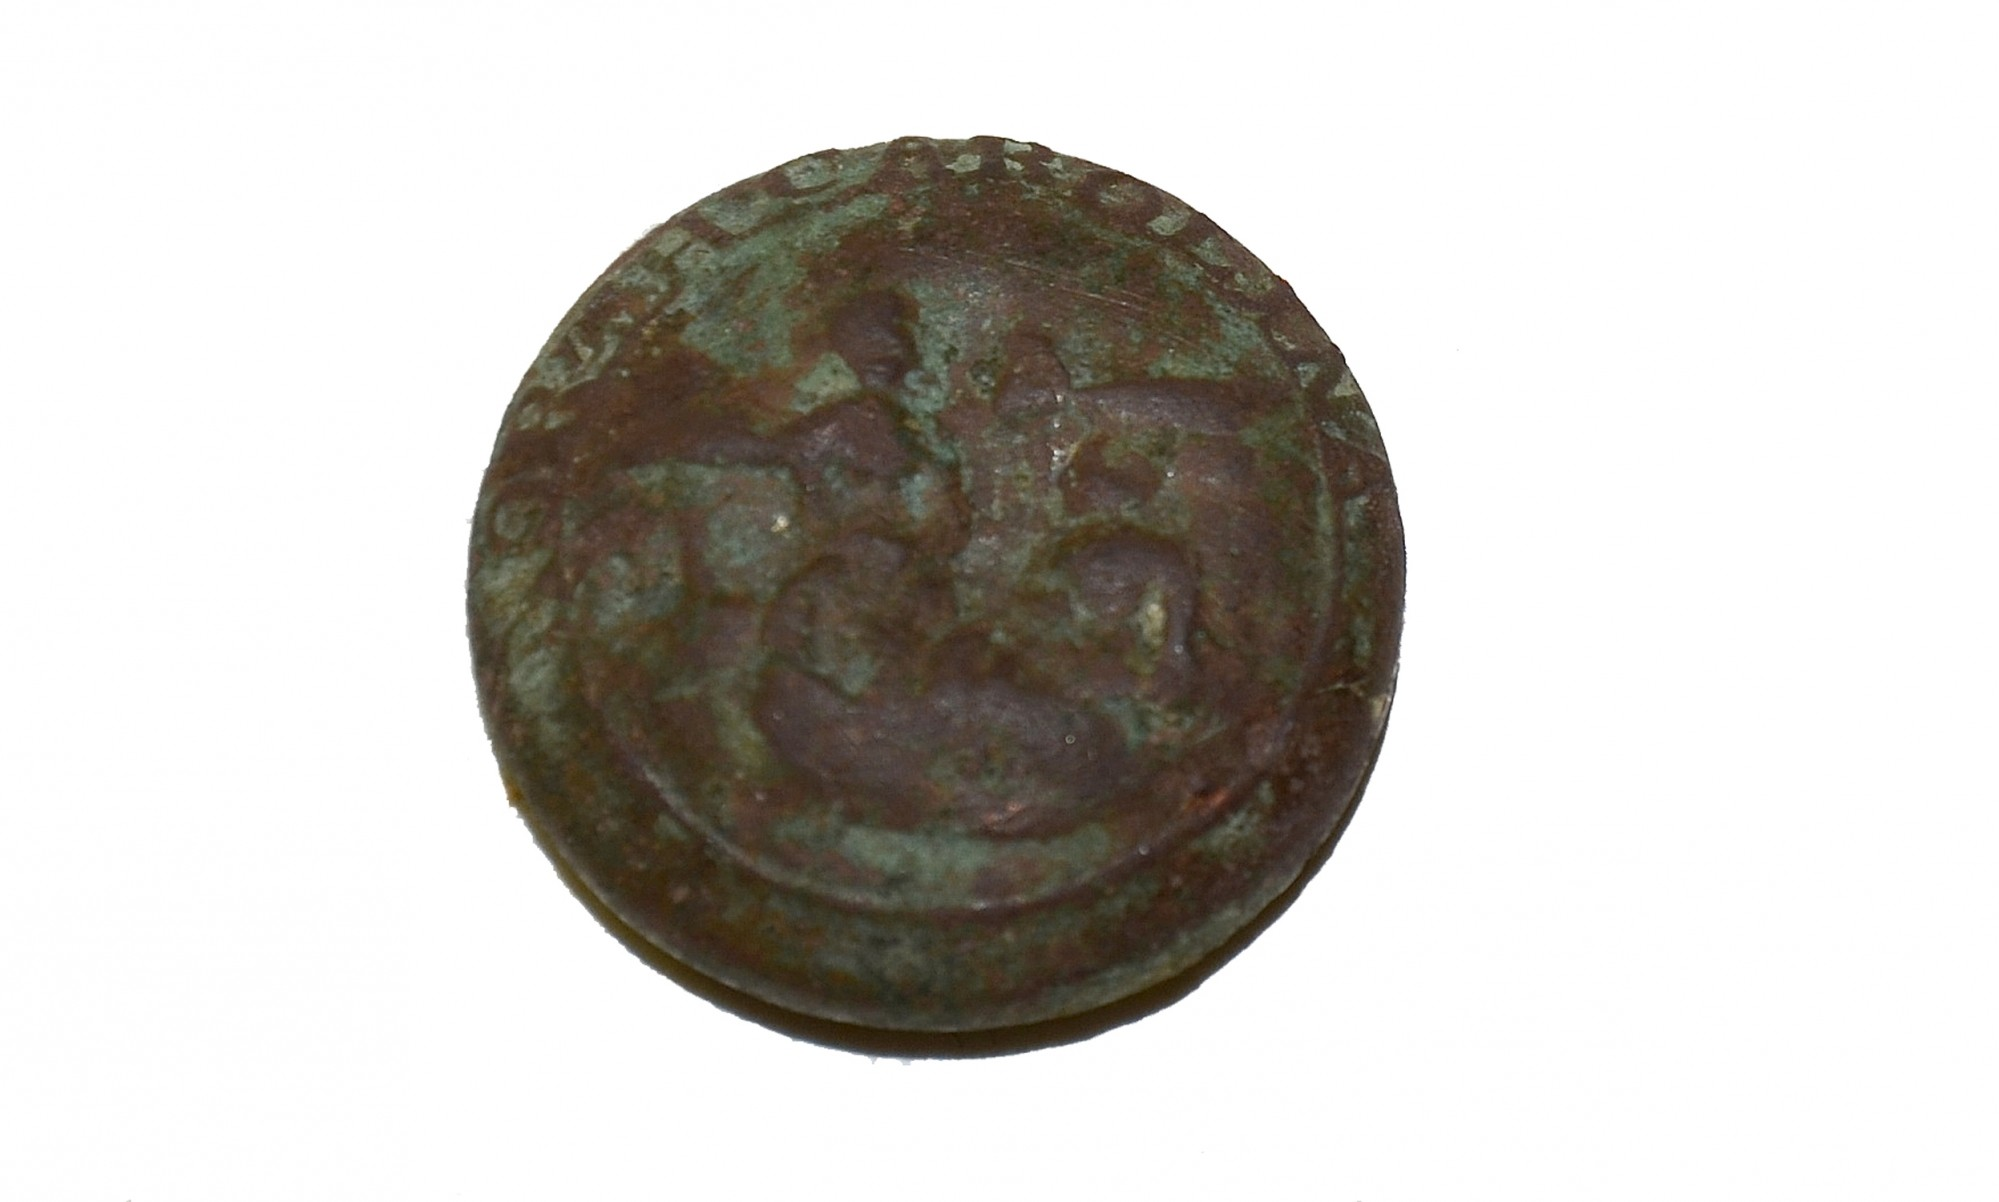 NORTH CAROLINA STATE BUTTON, RECOVERED FROM ROSE FARM WOODS, GETTYSBURG